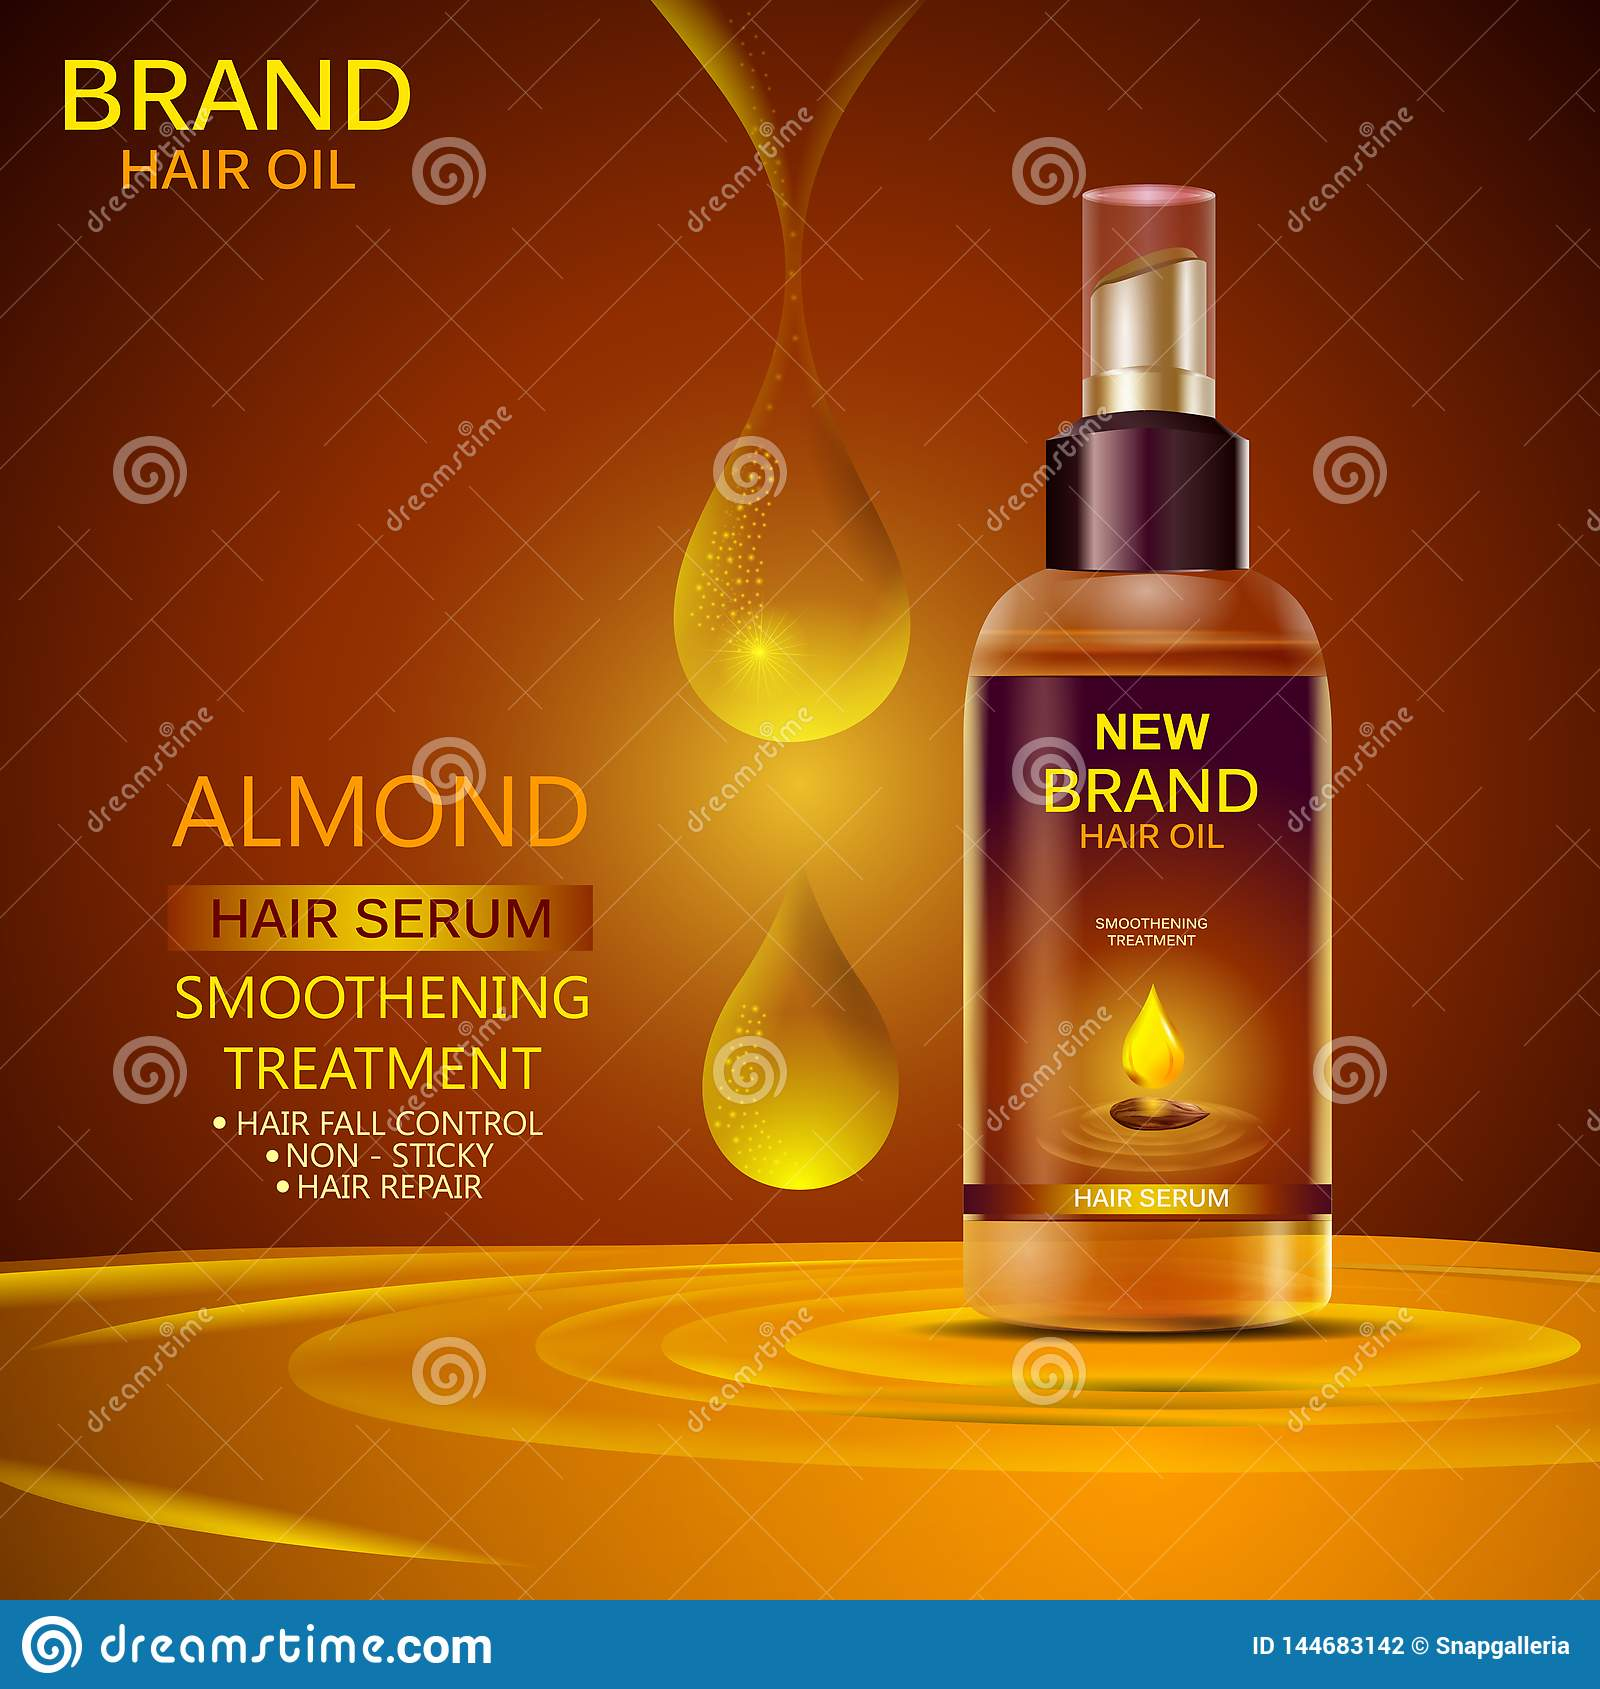 Advertisement Promotion Banner For Almond Oil Hair Serum For Smoothening And Strong Hair Stock Vector Illustration Of Nourish Design 144683142